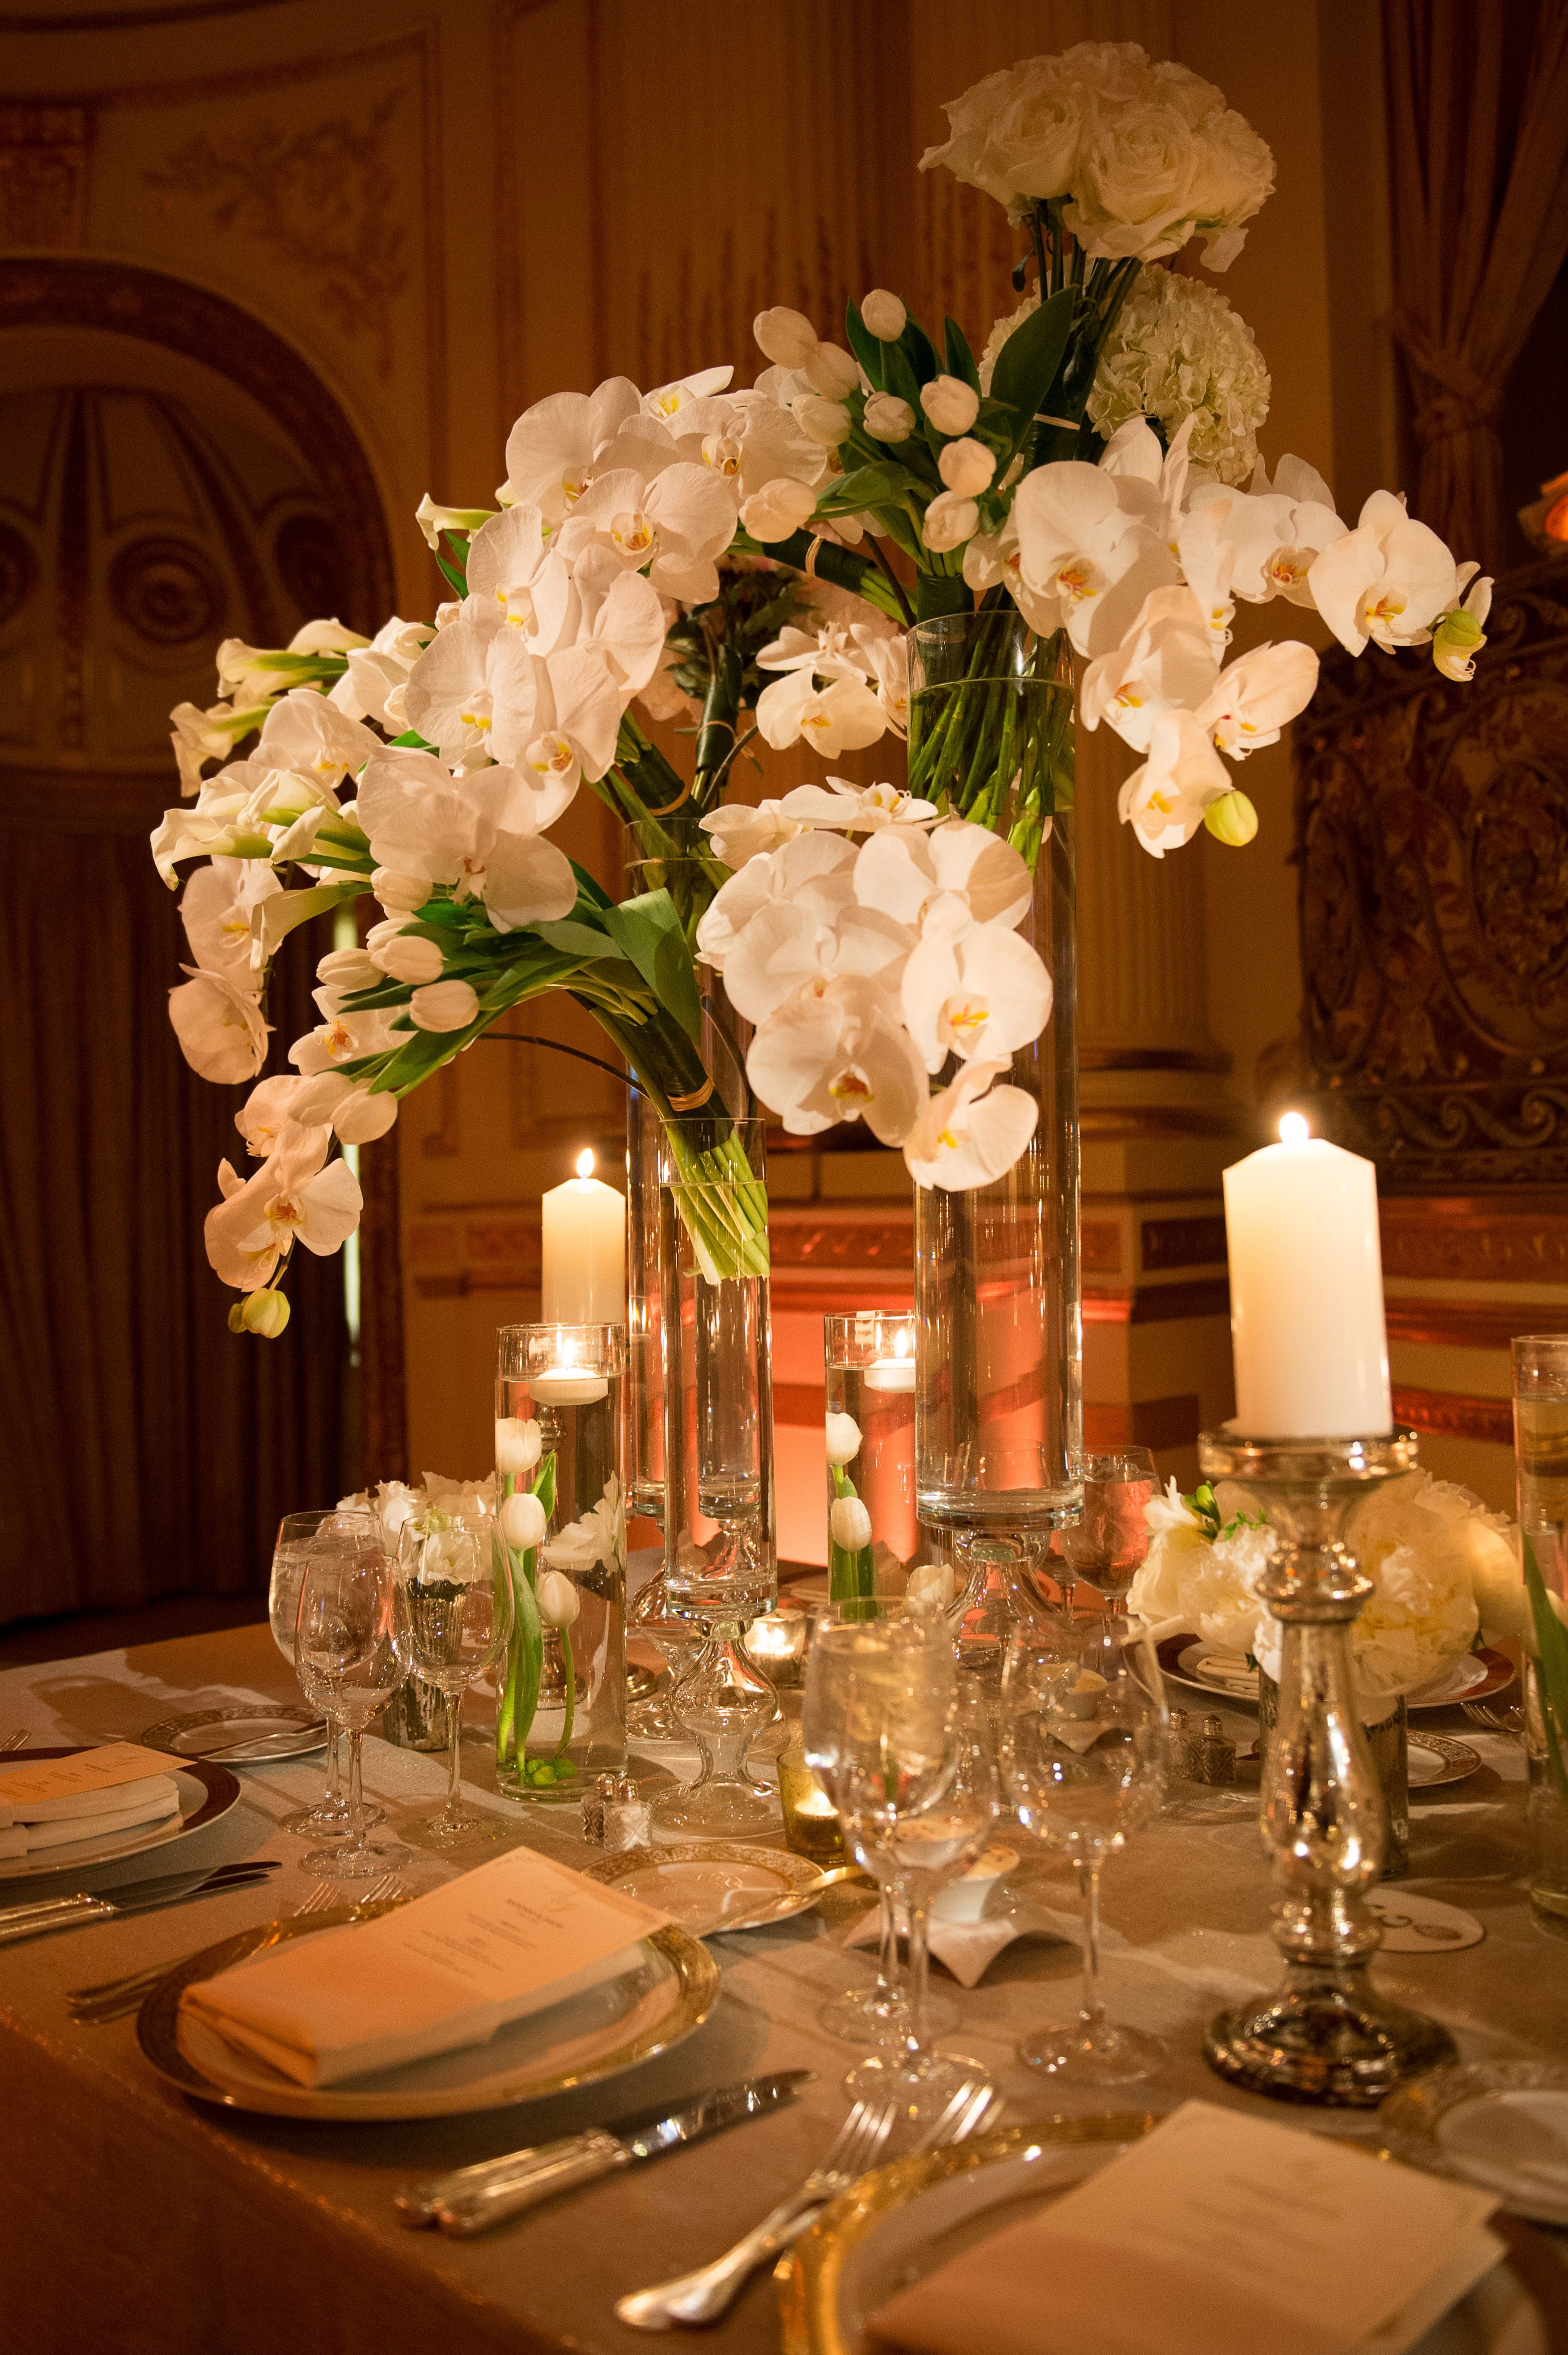 Another centerpiece design wedding reception decor for Elegant table centerpieces